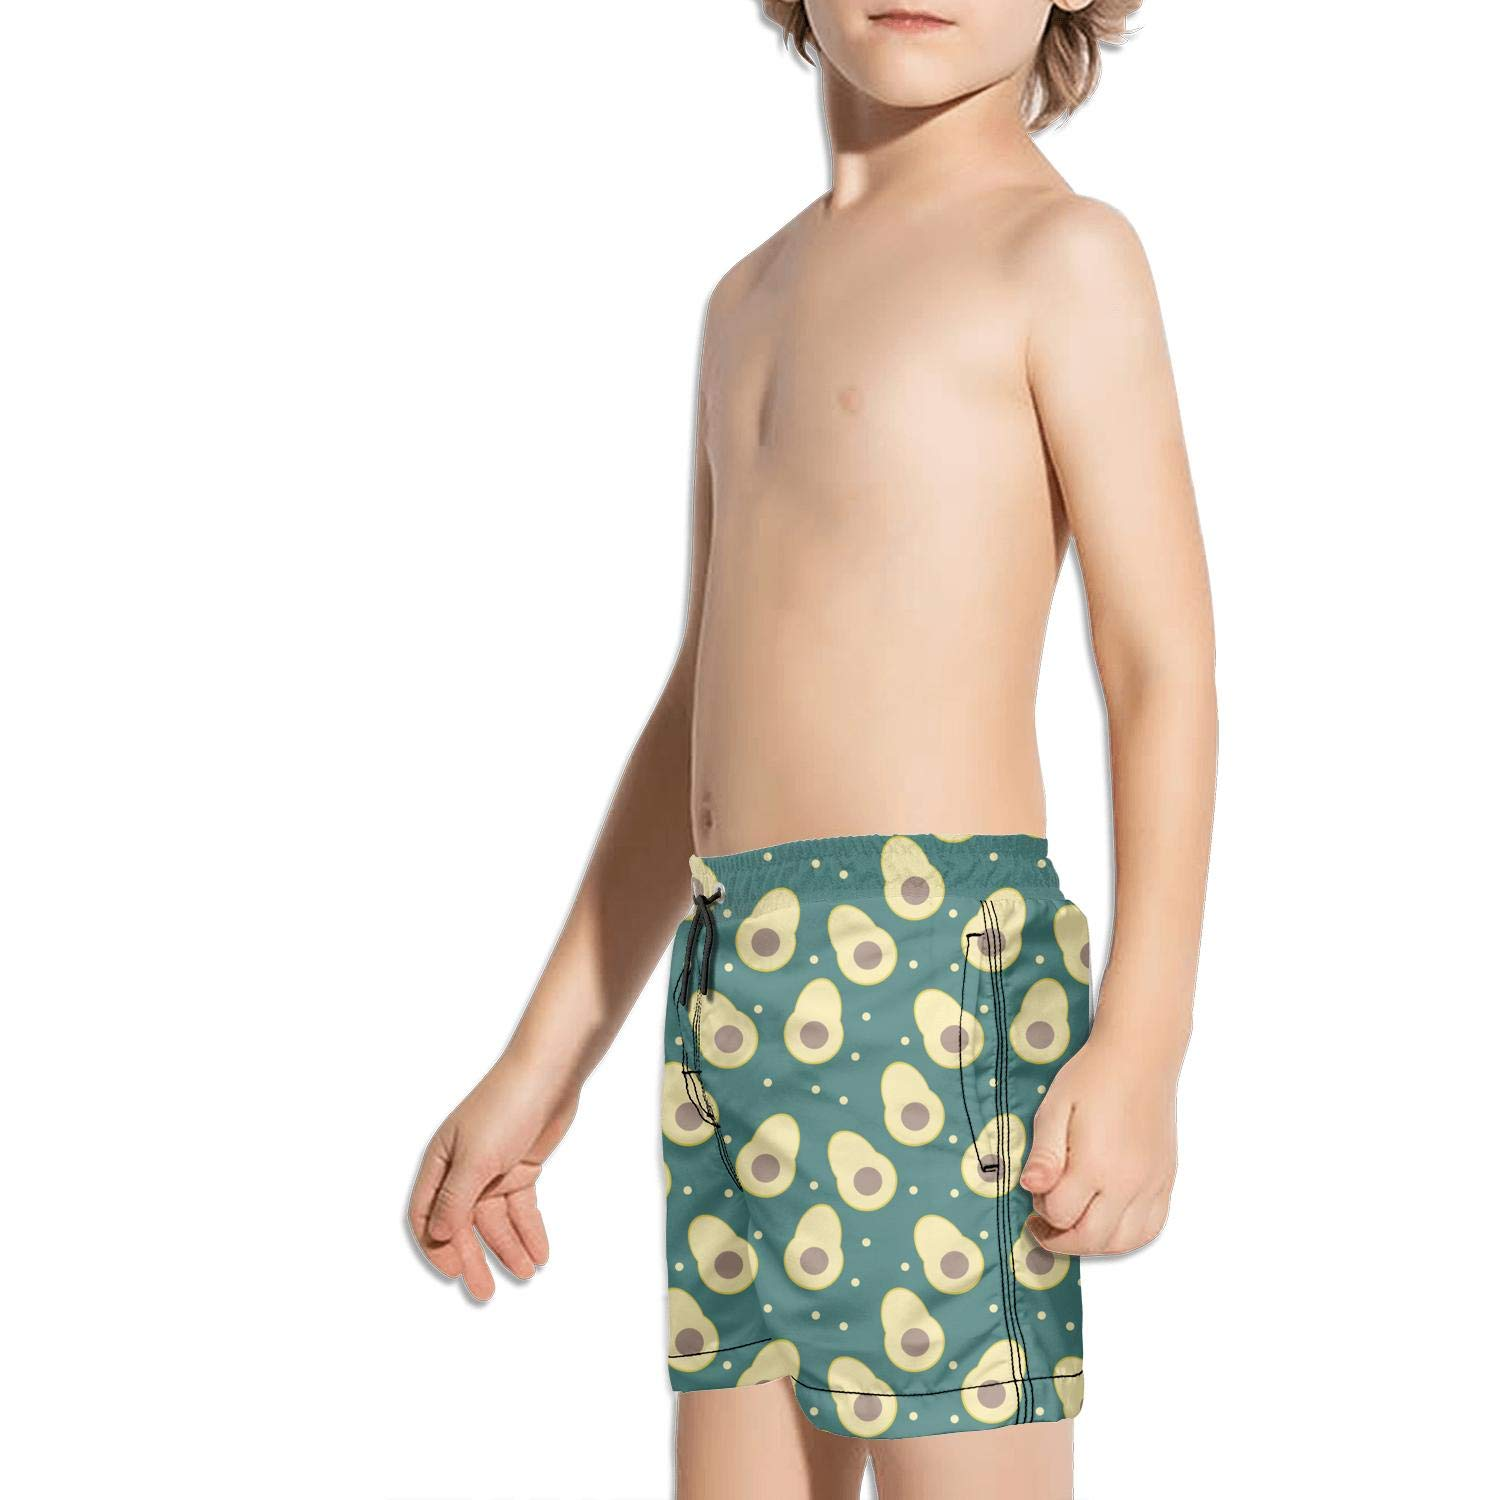 rtyil Organic Avocado Cute Avocado Unisex Kids Swimming Trunks Core Swim Shorts for Boys Miles Beach Shorts for Girls